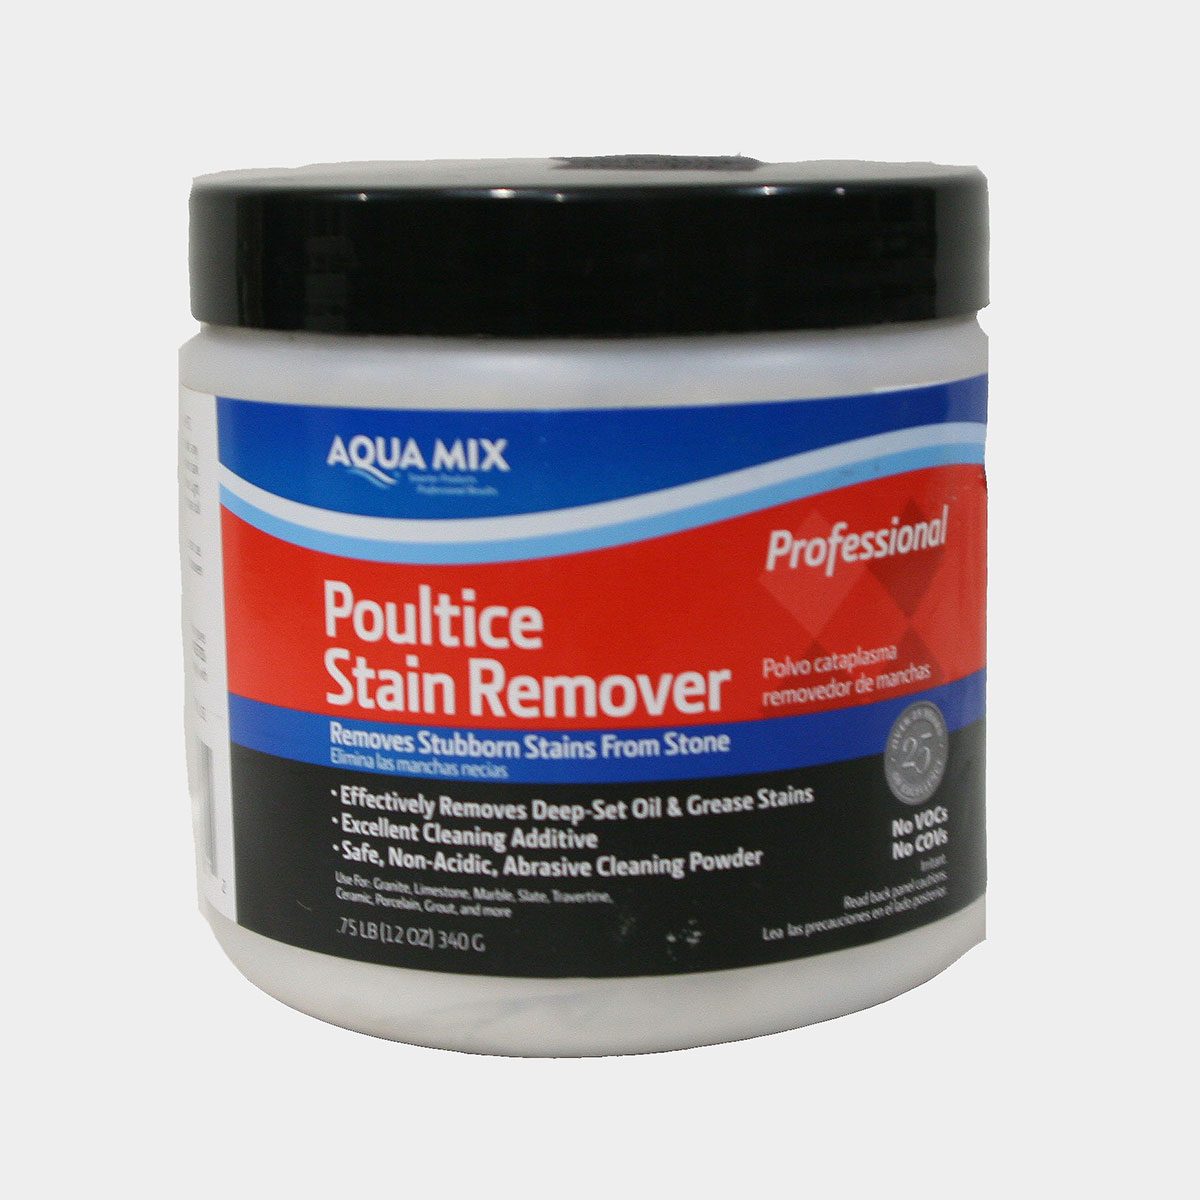 Aqua mix poultice 3 4 lb jar for Concrete cleaner oil remover